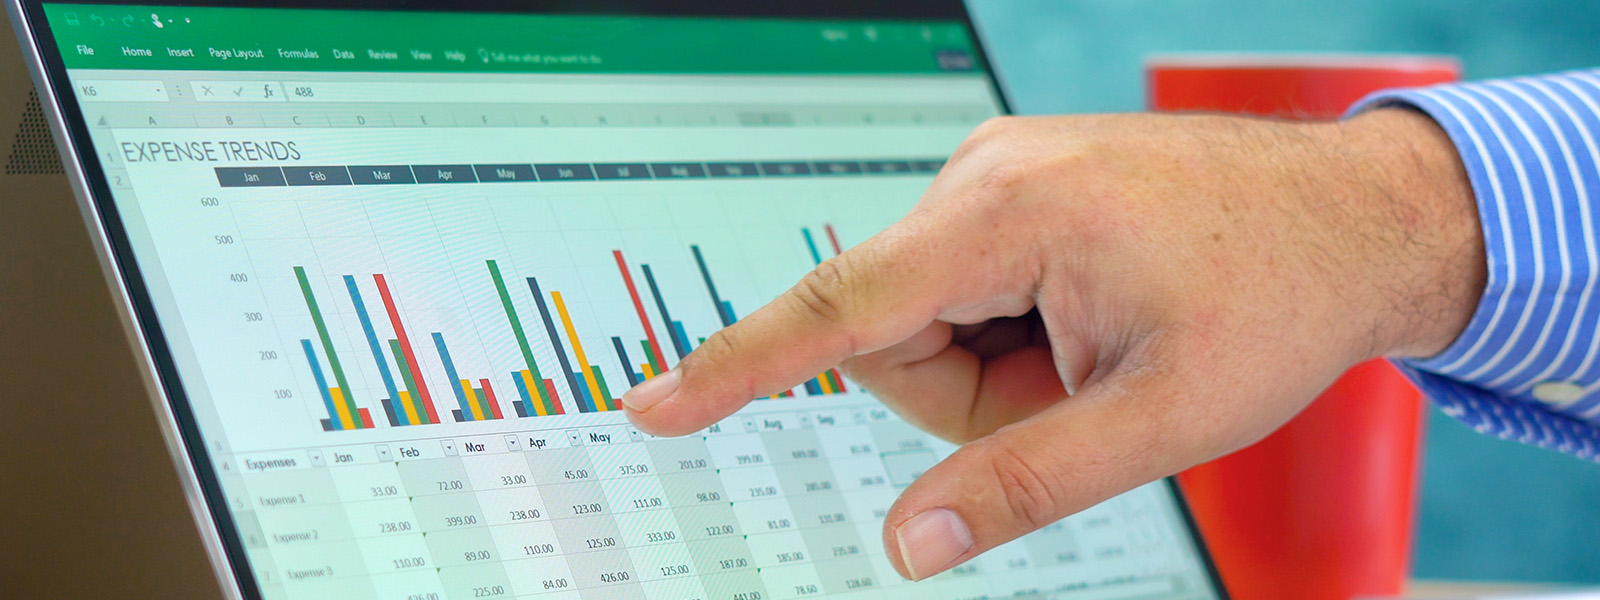 Hand pointing at Microsoft Excel bar chart on tablet